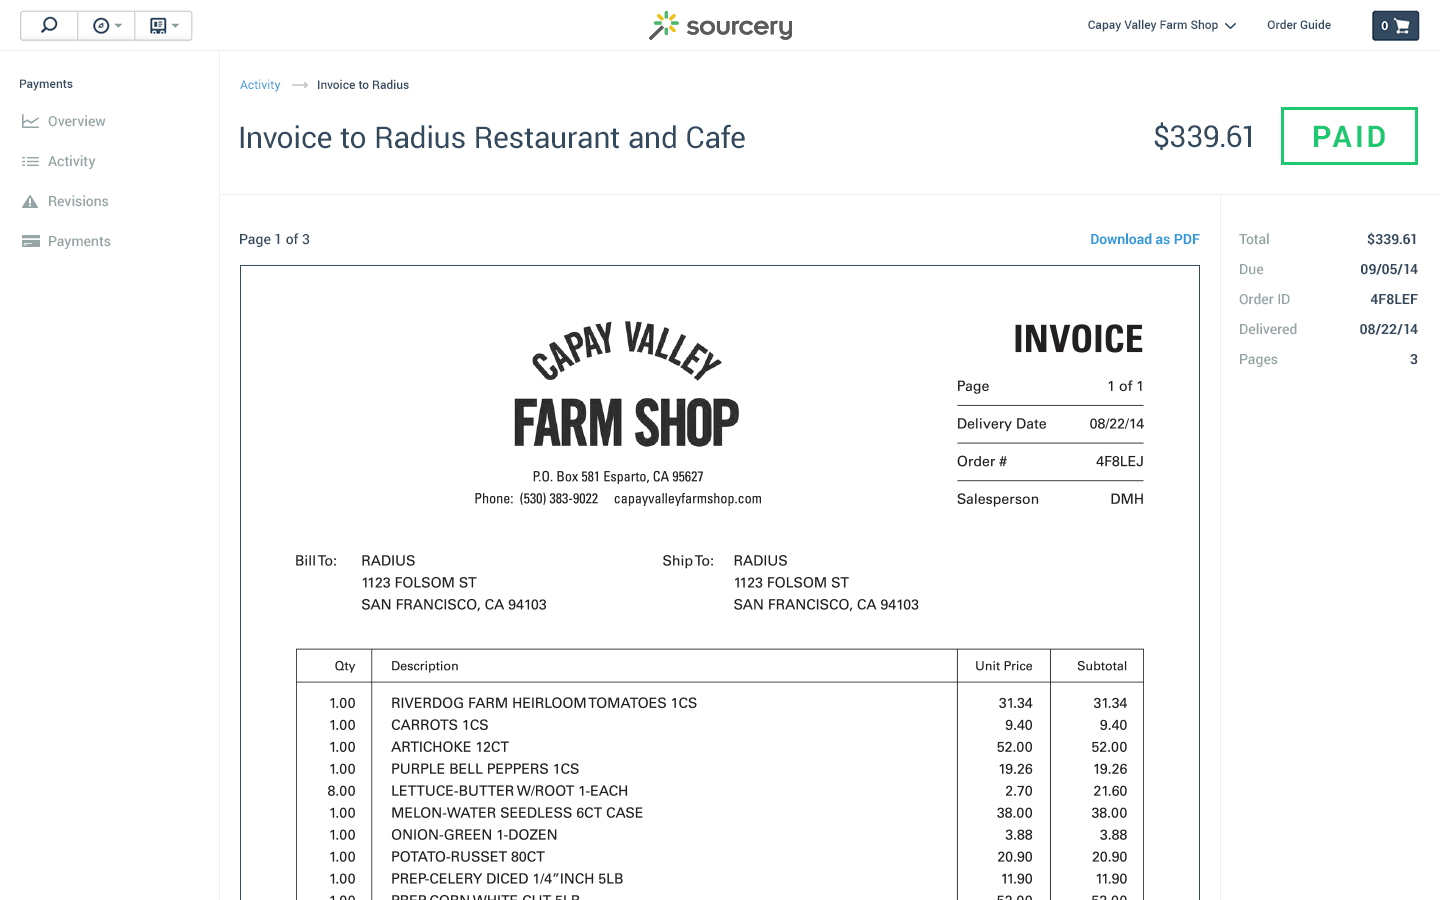 Opportunitycaus  Personable Wholesale Food Vendor Invoicing  Sourcery With Marvelous Screenshot Of Vendor Storage With Astonishing Personalised Invoice Books Duplicate Also Invoice Template Nz In Addition Sample Invoice For Freelance Work And Free Vat Invoice Template As Well As Invoice  Way Match Additionally Simple Invoice Management System From Getsourcerycom With Opportunitycaus  Marvelous Wholesale Food Vendor Invoicing  Sourcery With Astonishing Screenshot Of Vendor Storage And Personable Personalised Invoice Books Duplicate Also Invoice Template Nz In Addition Sample Invoice For Freelance Work From Getsourcerycom